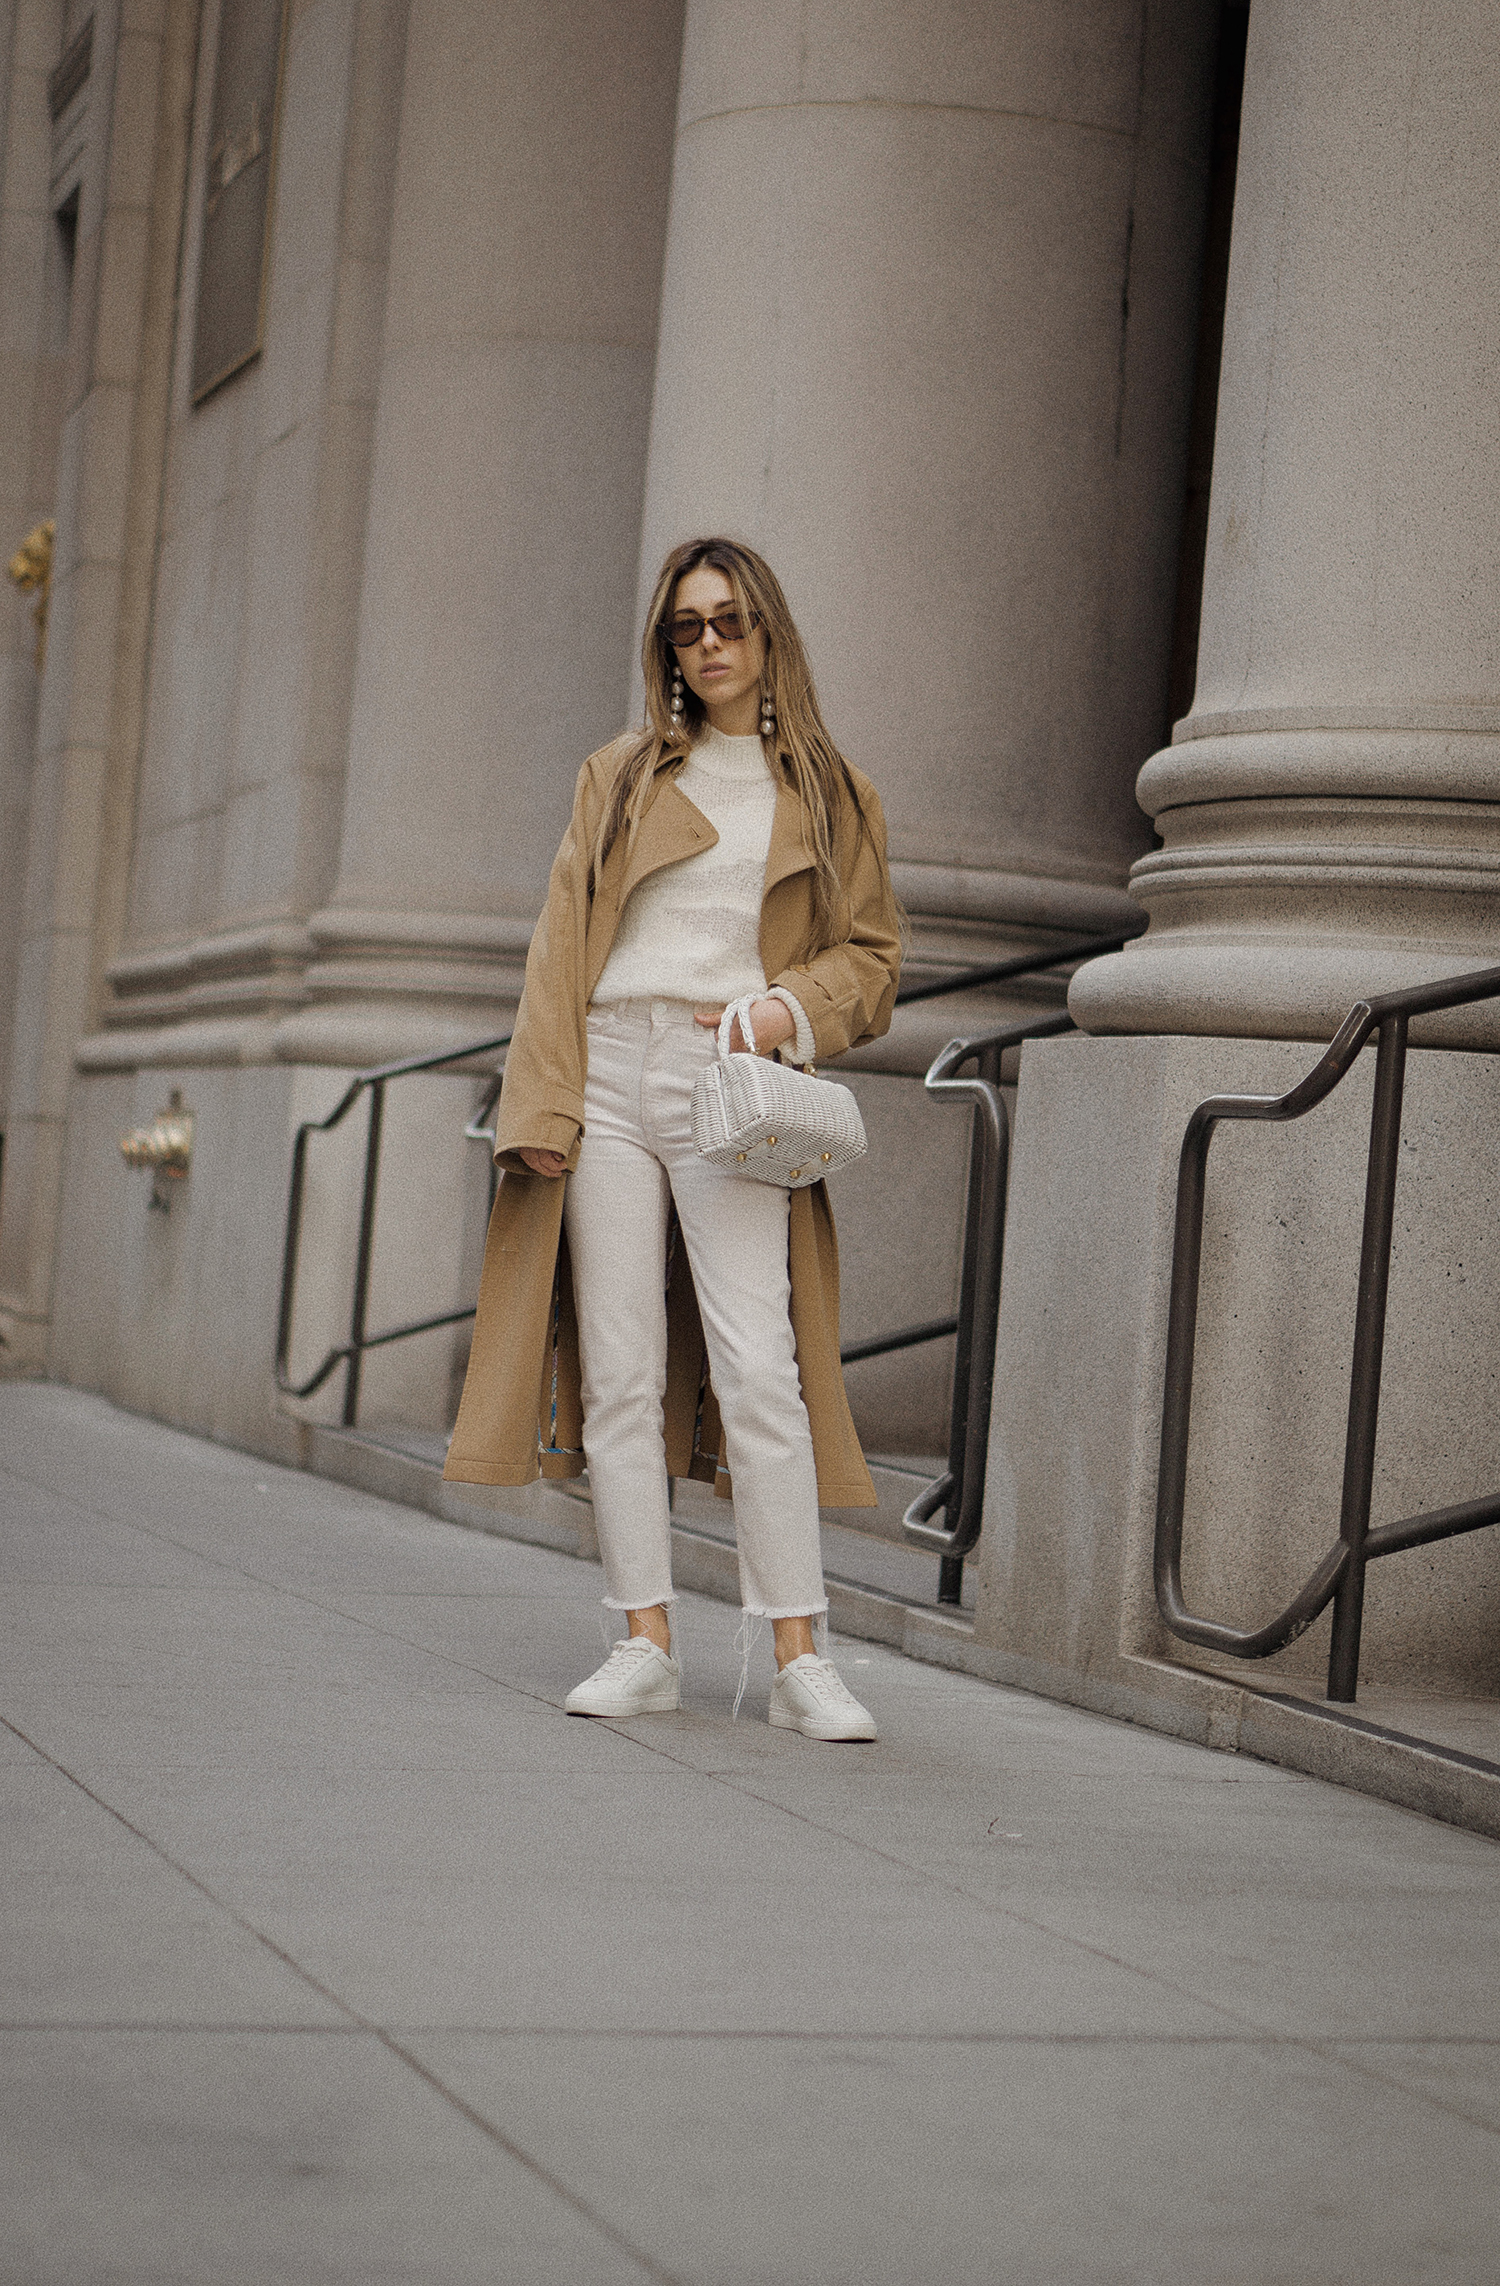 paulsmith_trenchcoat_vinceshoes_wicker_bag_white_outfit_freepeople_lenajuice_thewhiteocean_07